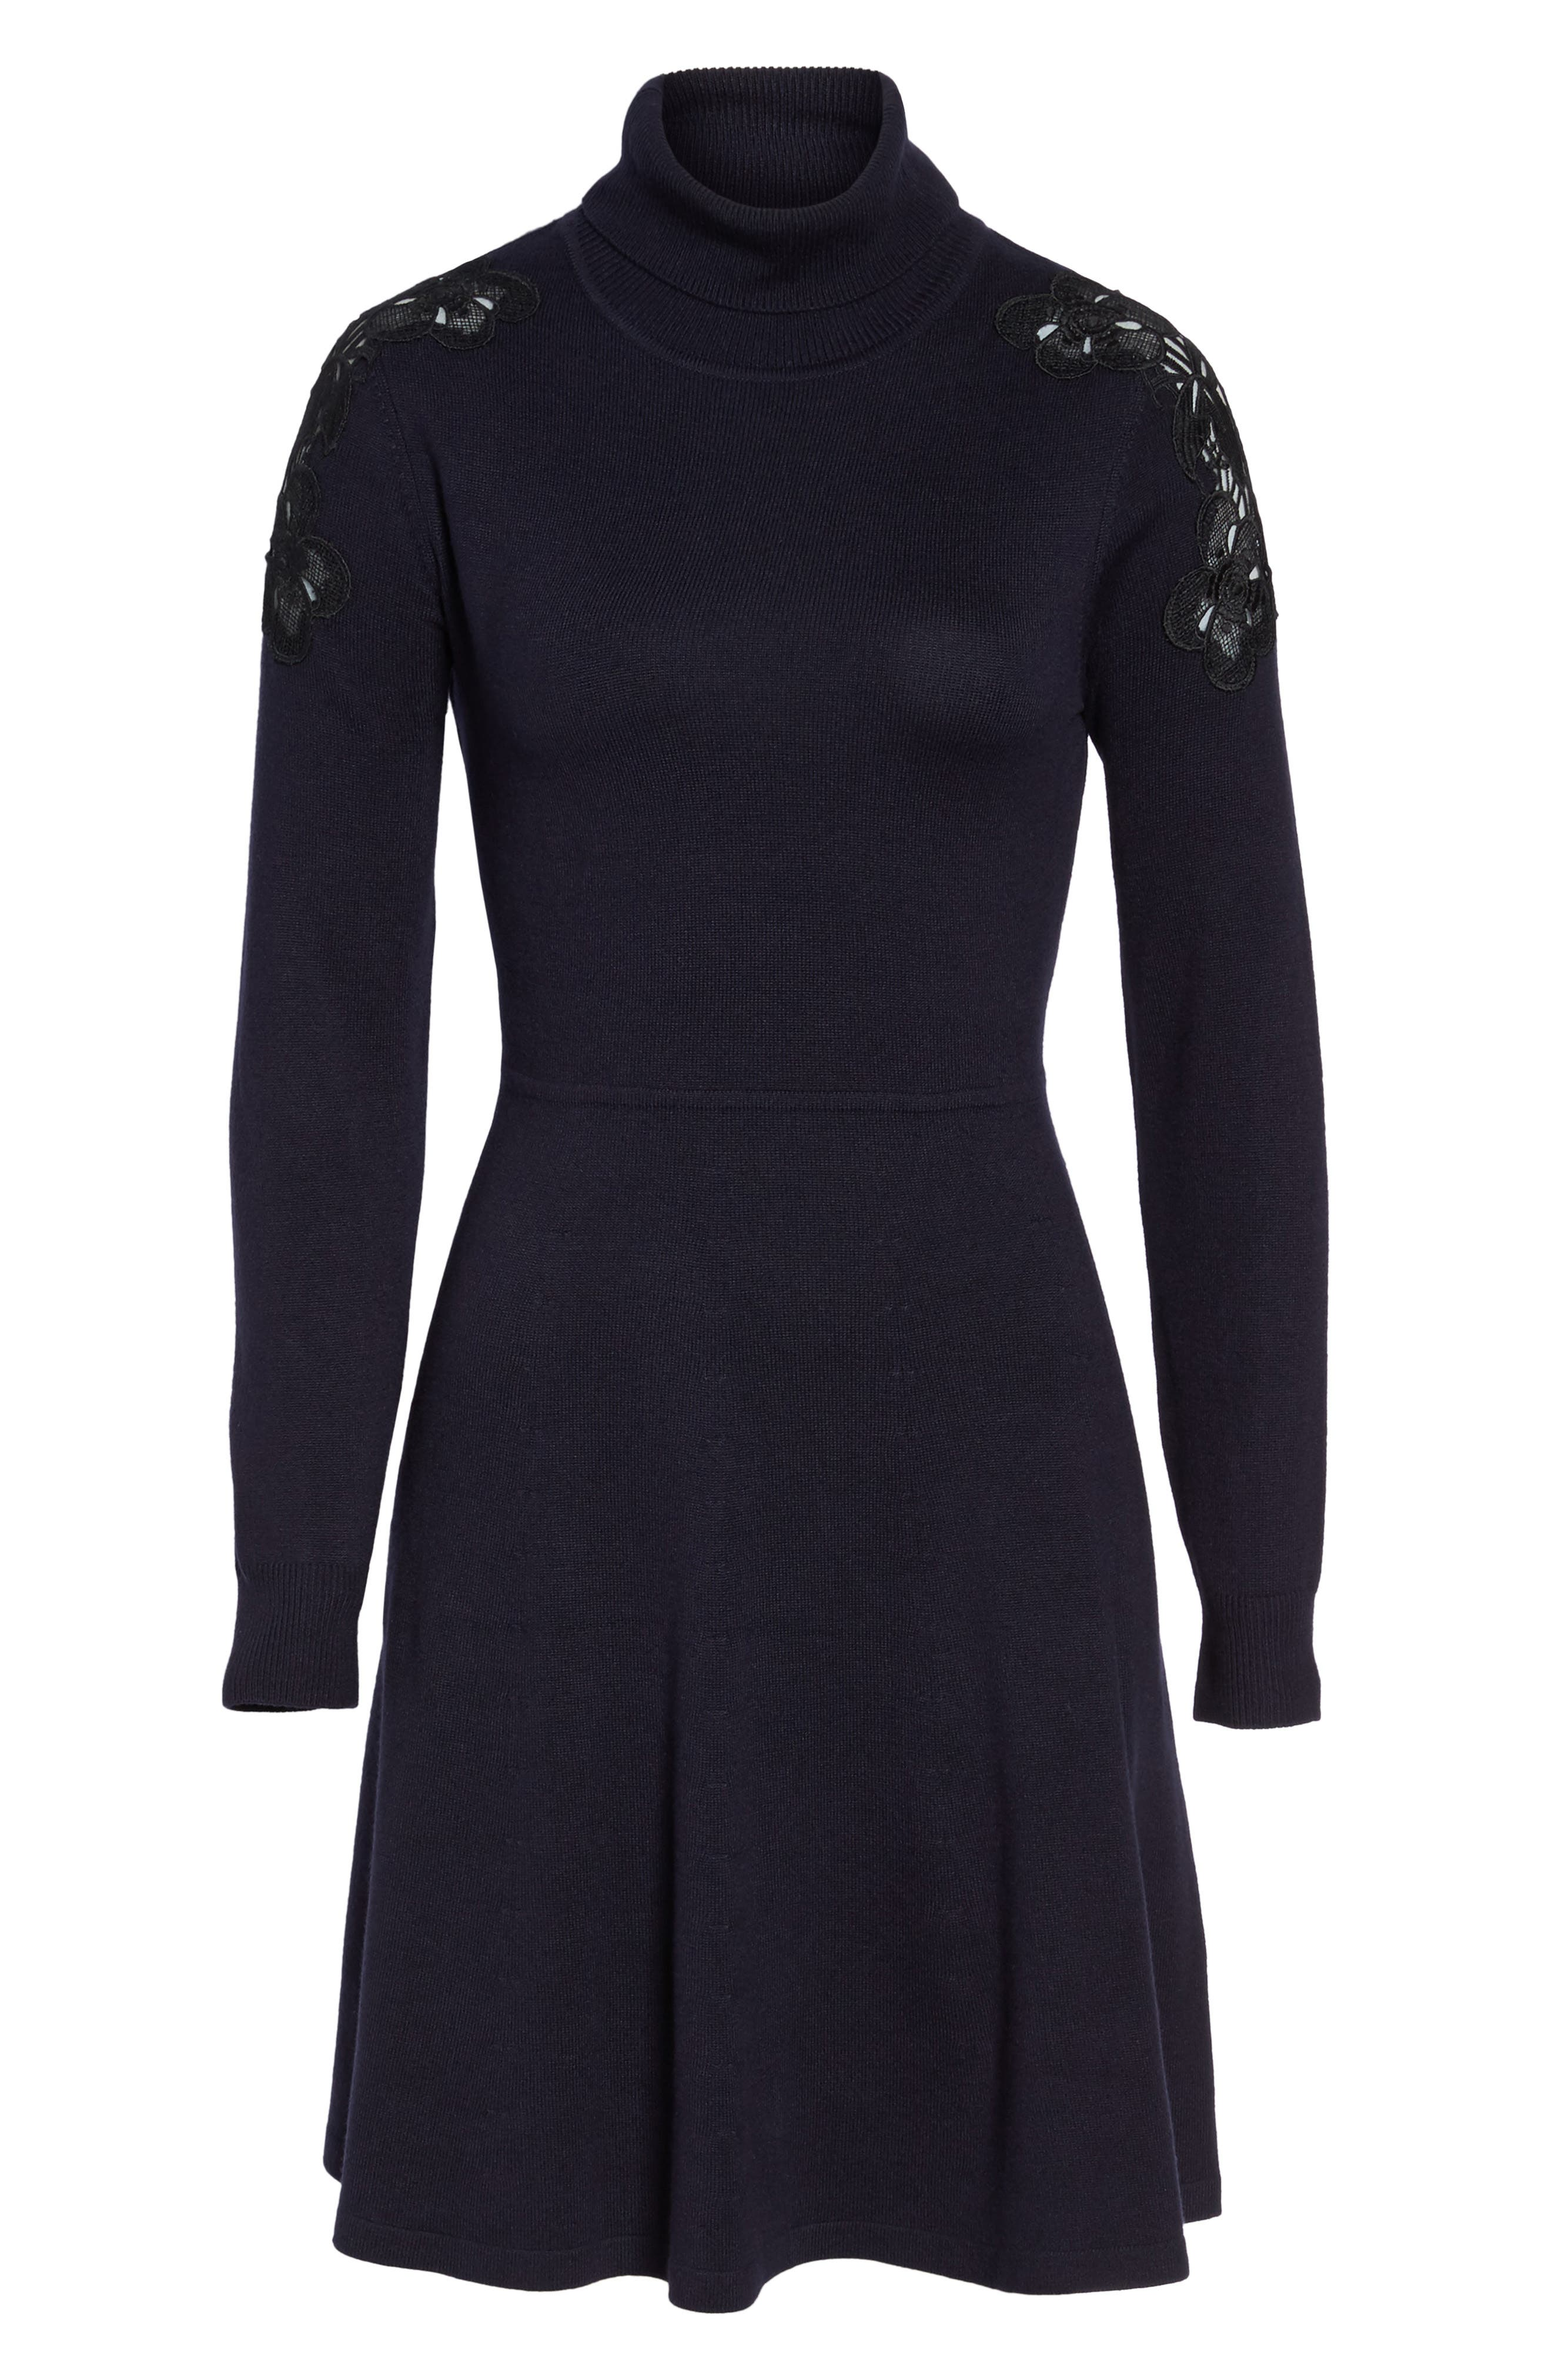 Lace Shoulder Turtleneck Sweater Dress,                             Alternate thumbnail 6, color,                             Navy